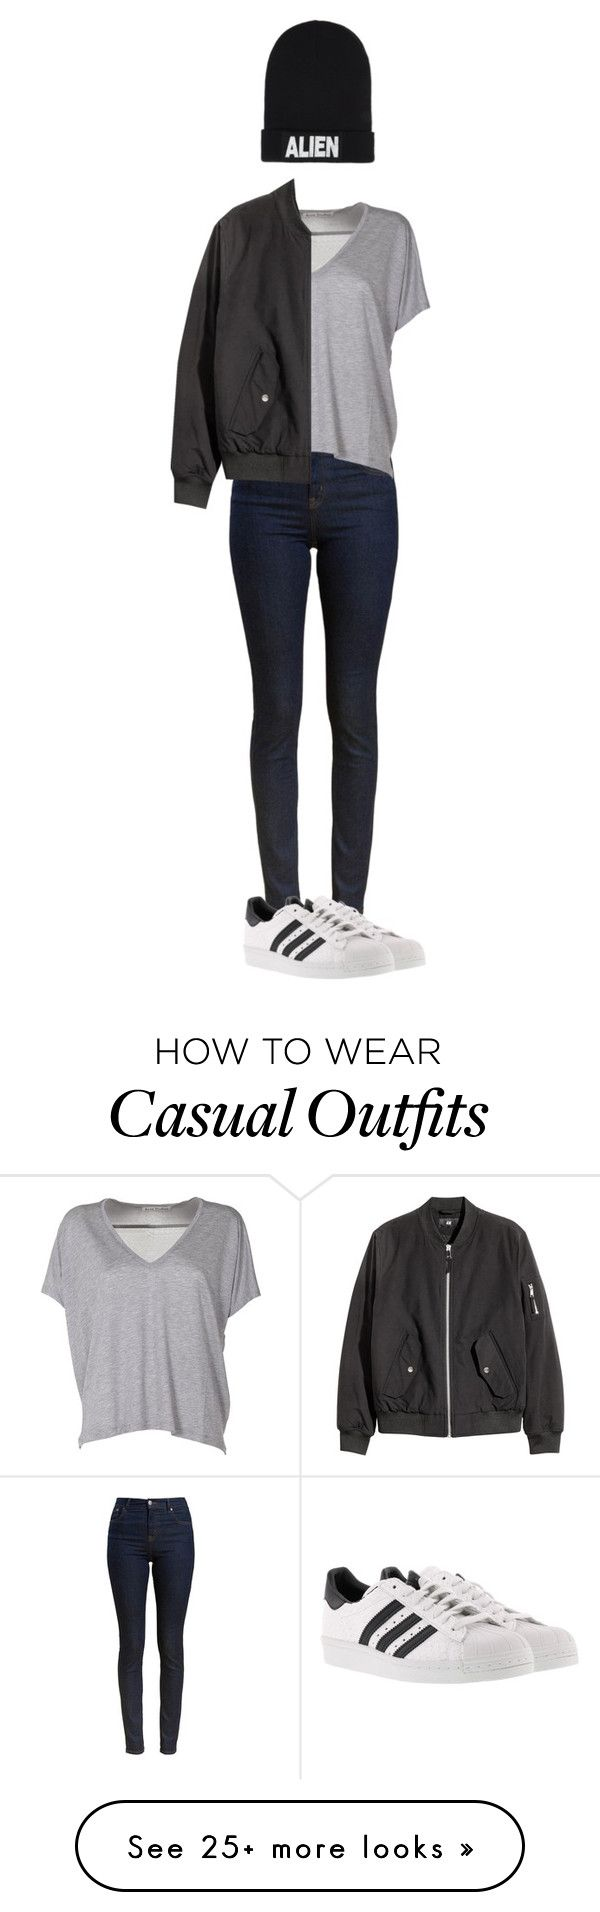 """street casual -Kang allyn fanboy"" by kangallynfanboy on Polyvore featuring Barbour, Acne Studios, adidas and Nicopanda"